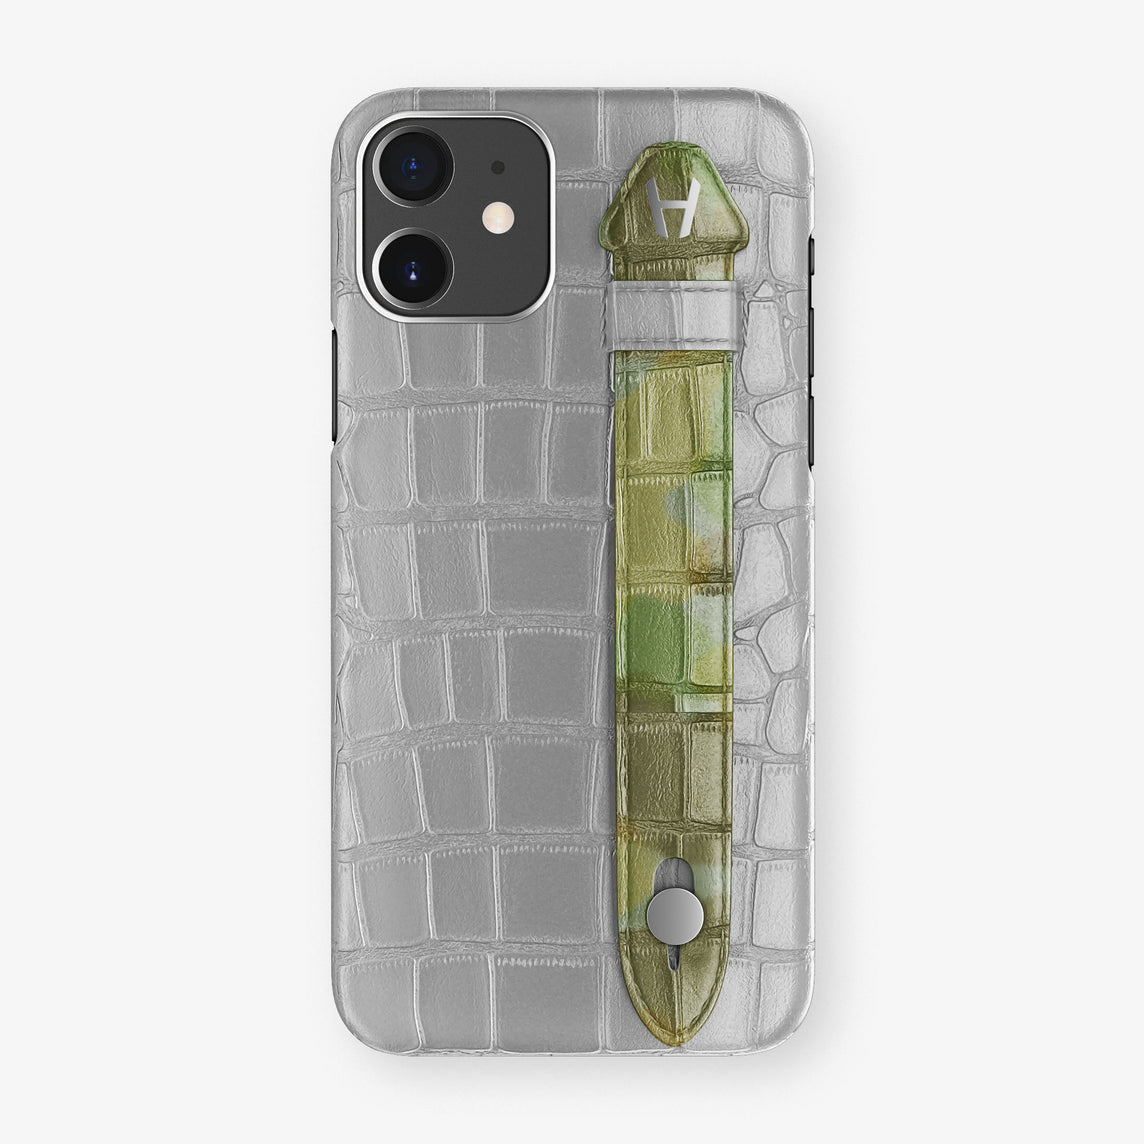 Alligator Side Finger Case Phone 11  | Silver/Green Camouflage - Stainless-Steel